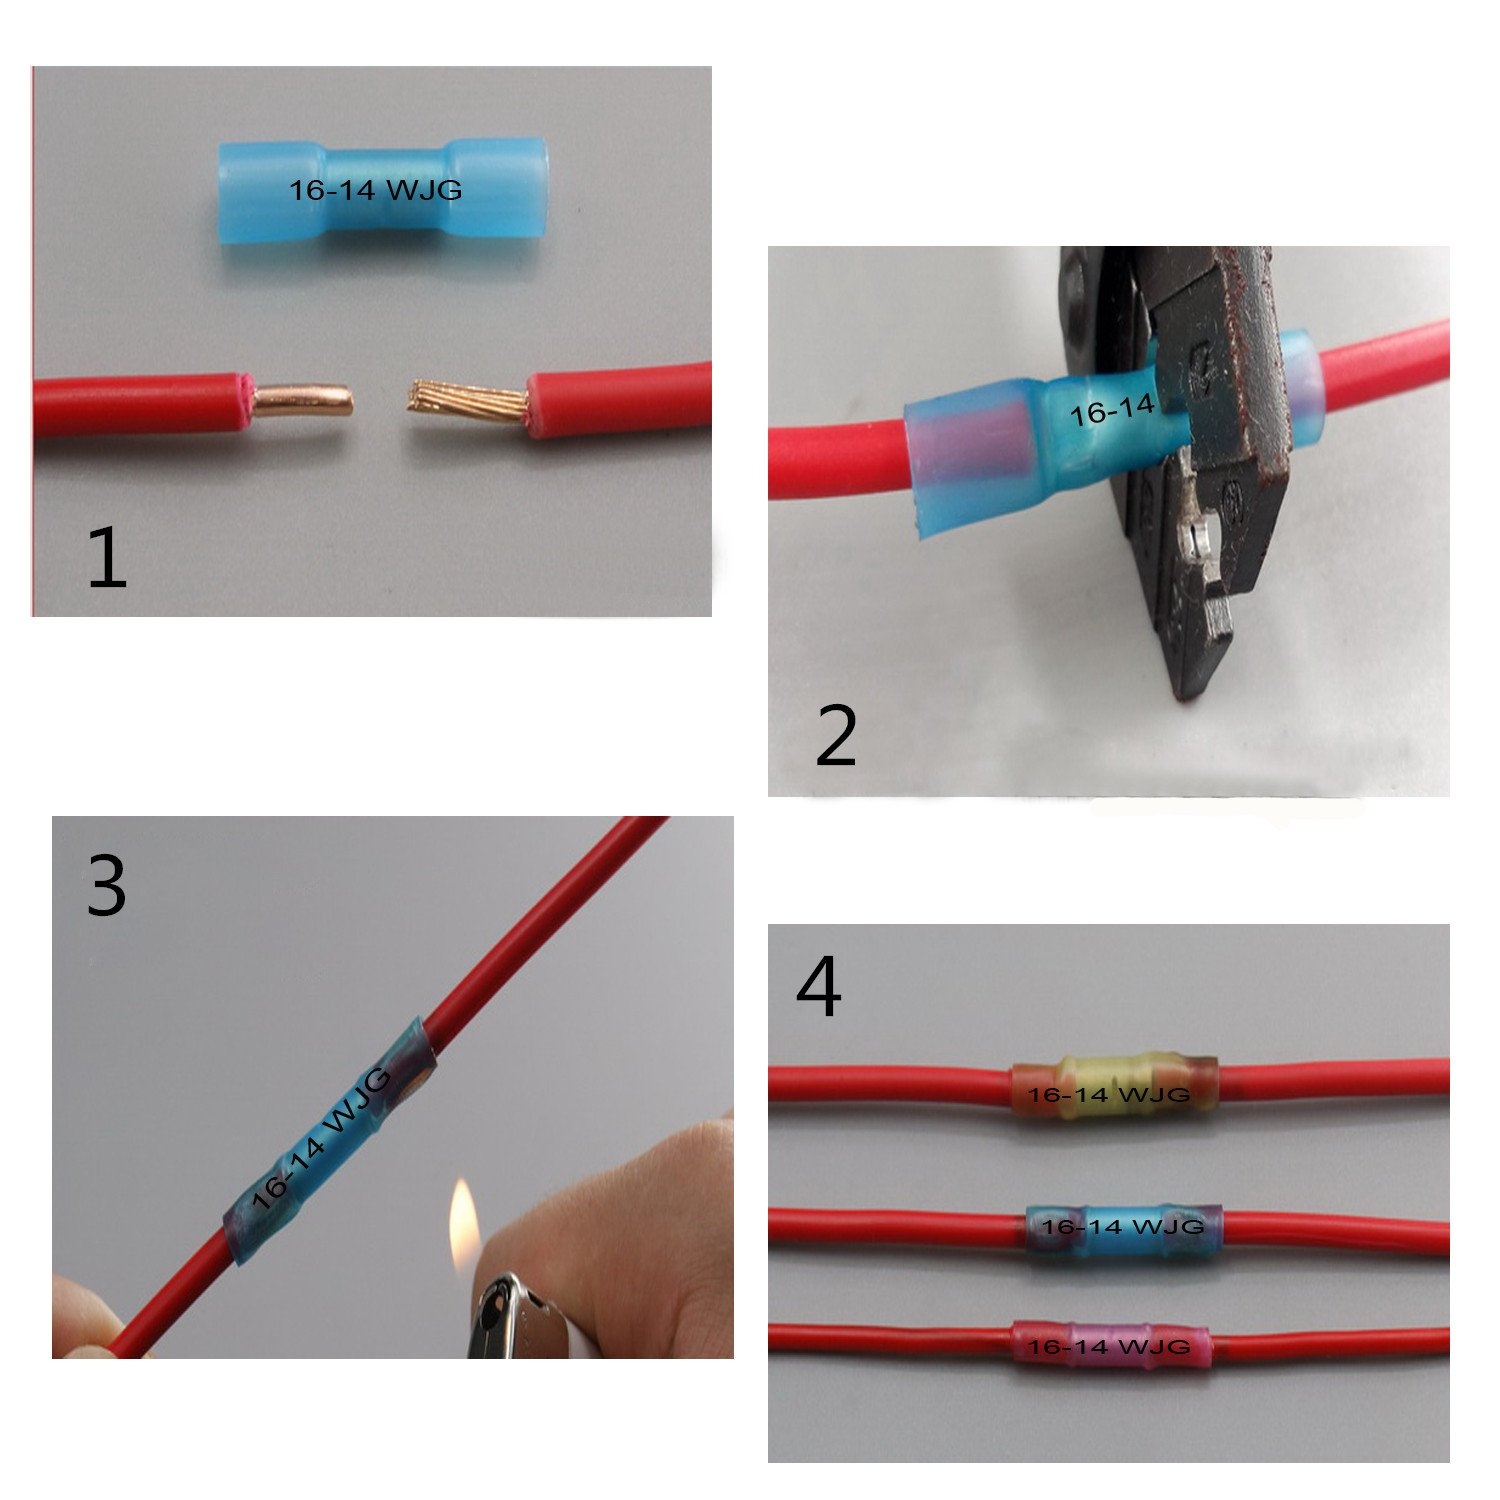 200pcs Heat Shrink Butt Connectors Terminals, Amtake Insulated Wire Electrical Connector, Crimp Butt Splice Terminal Kit(AWG 22-18 16-14 12-10 Gauge)